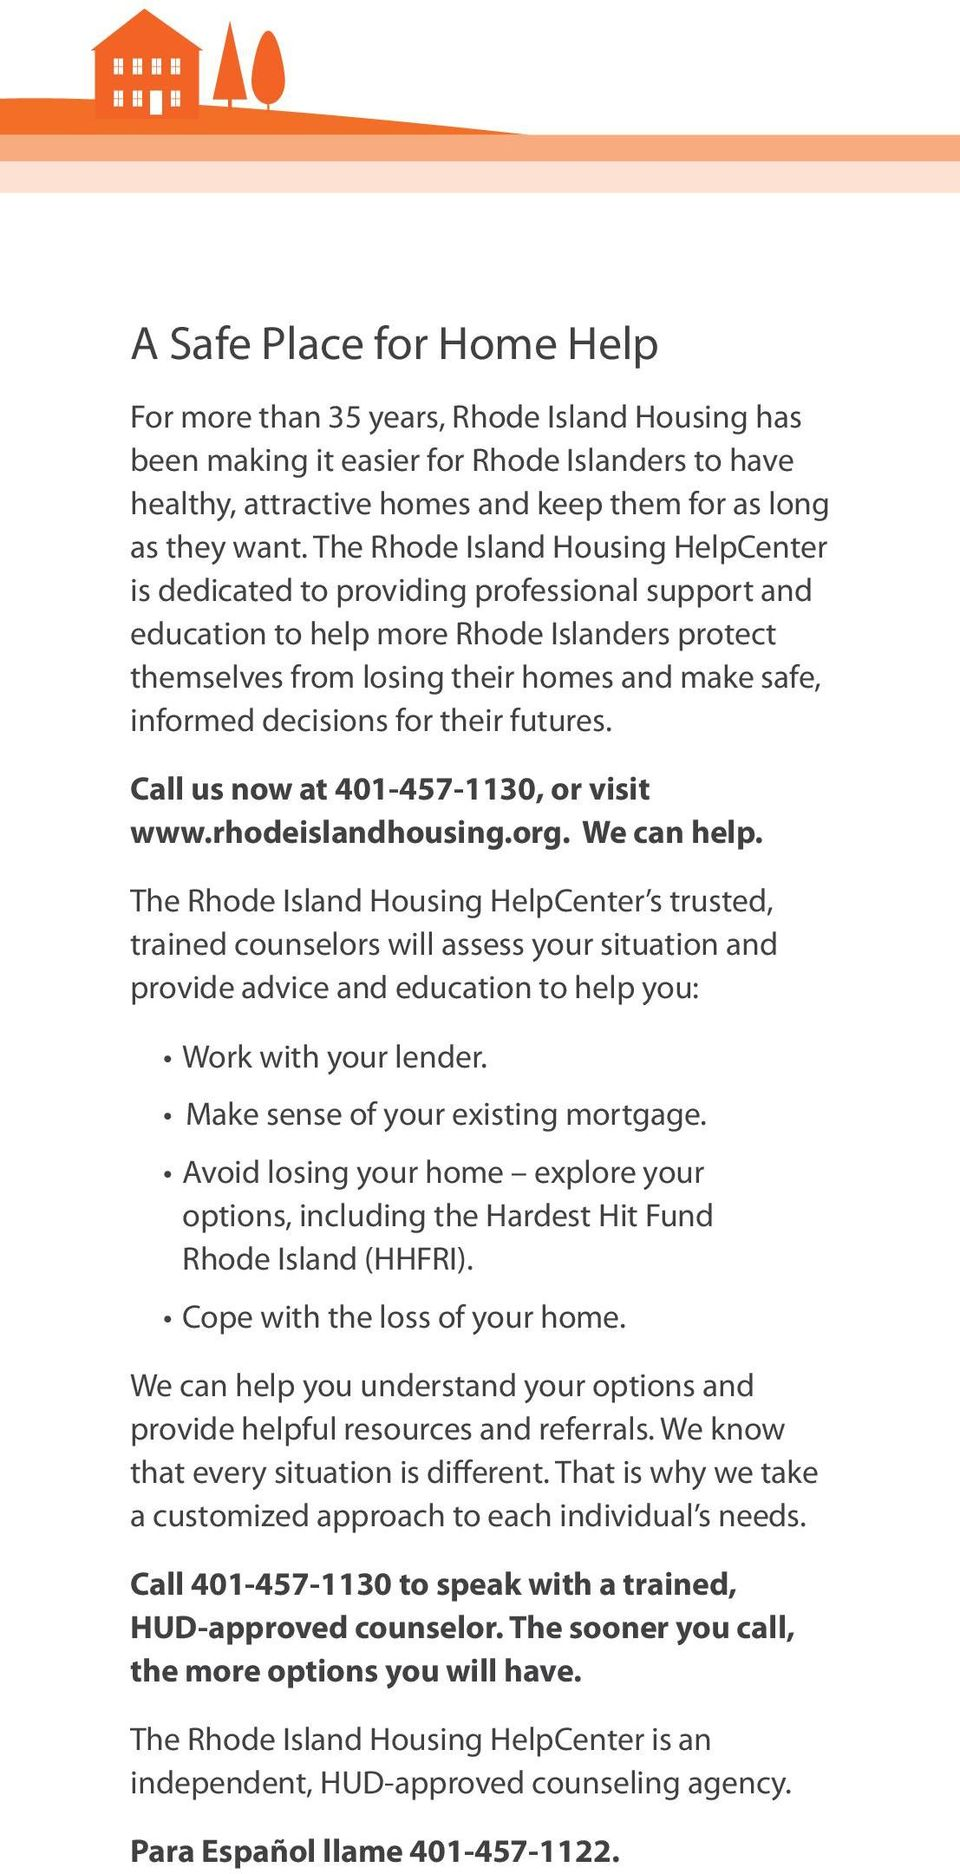 decisions for their futures. Call us now at 401-457-1130, or visit www.rhodeislandhousing.org. We can help.